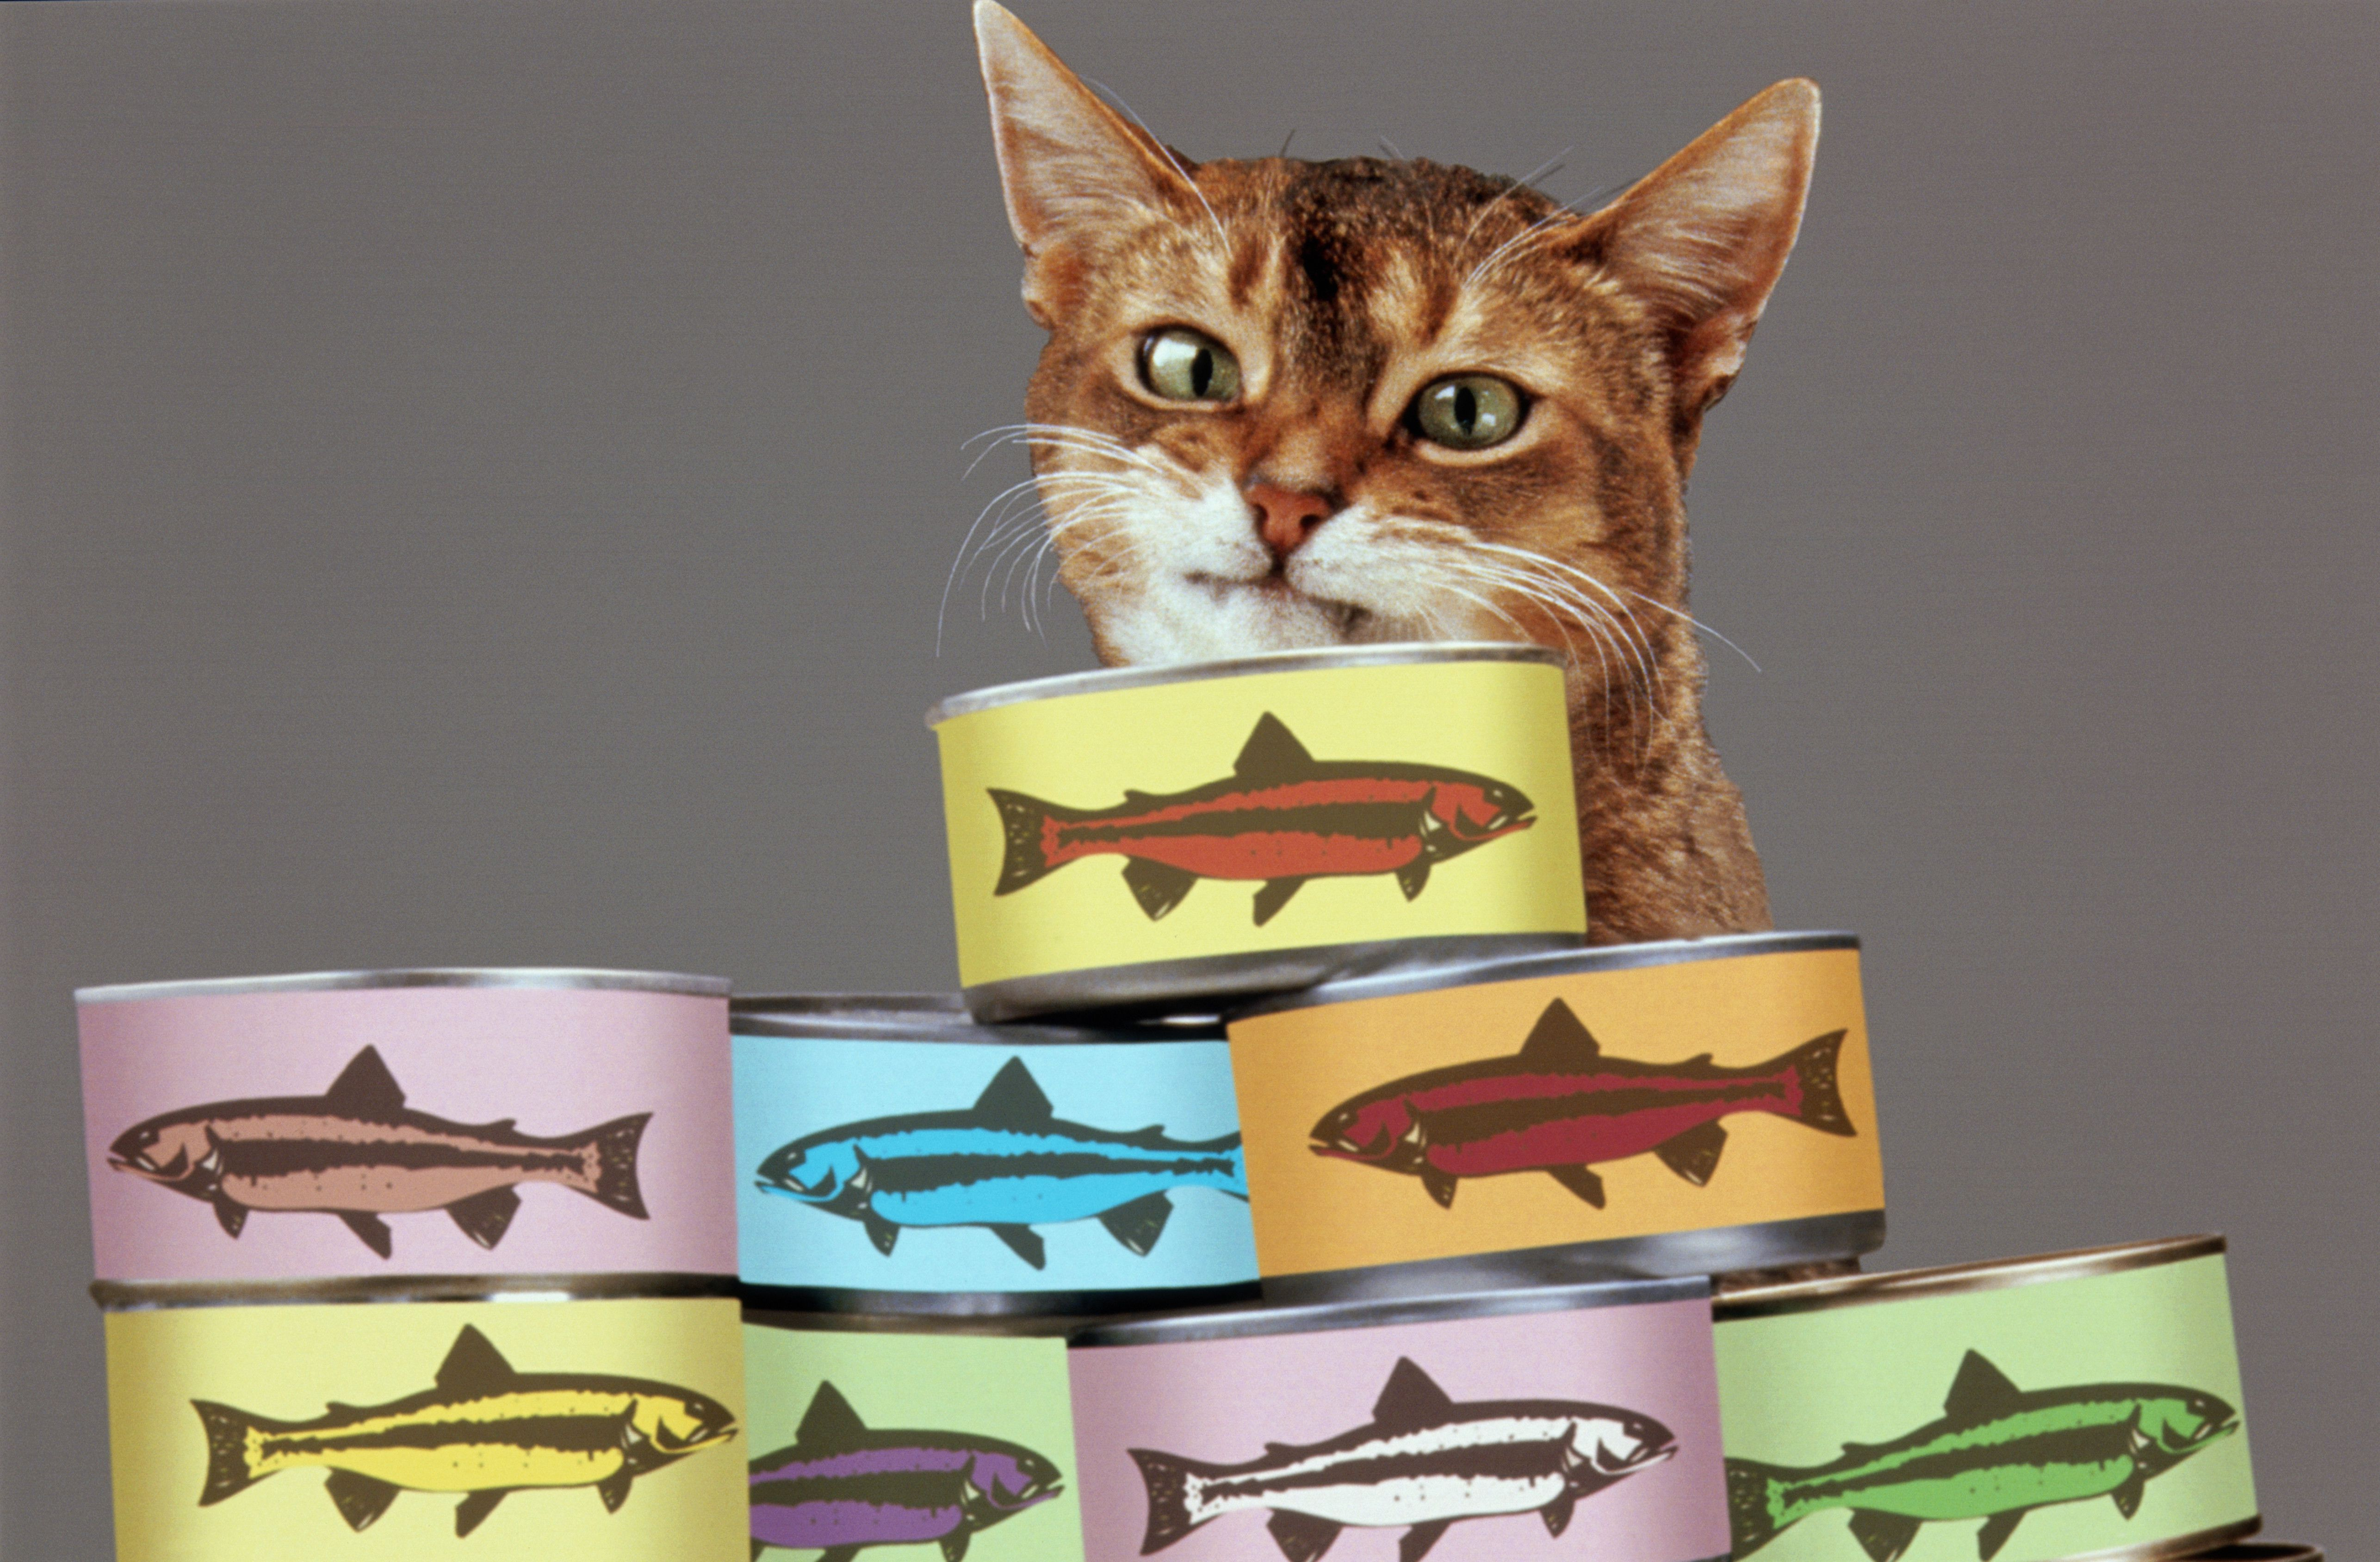 Abyssinian cat behind stacked food cans